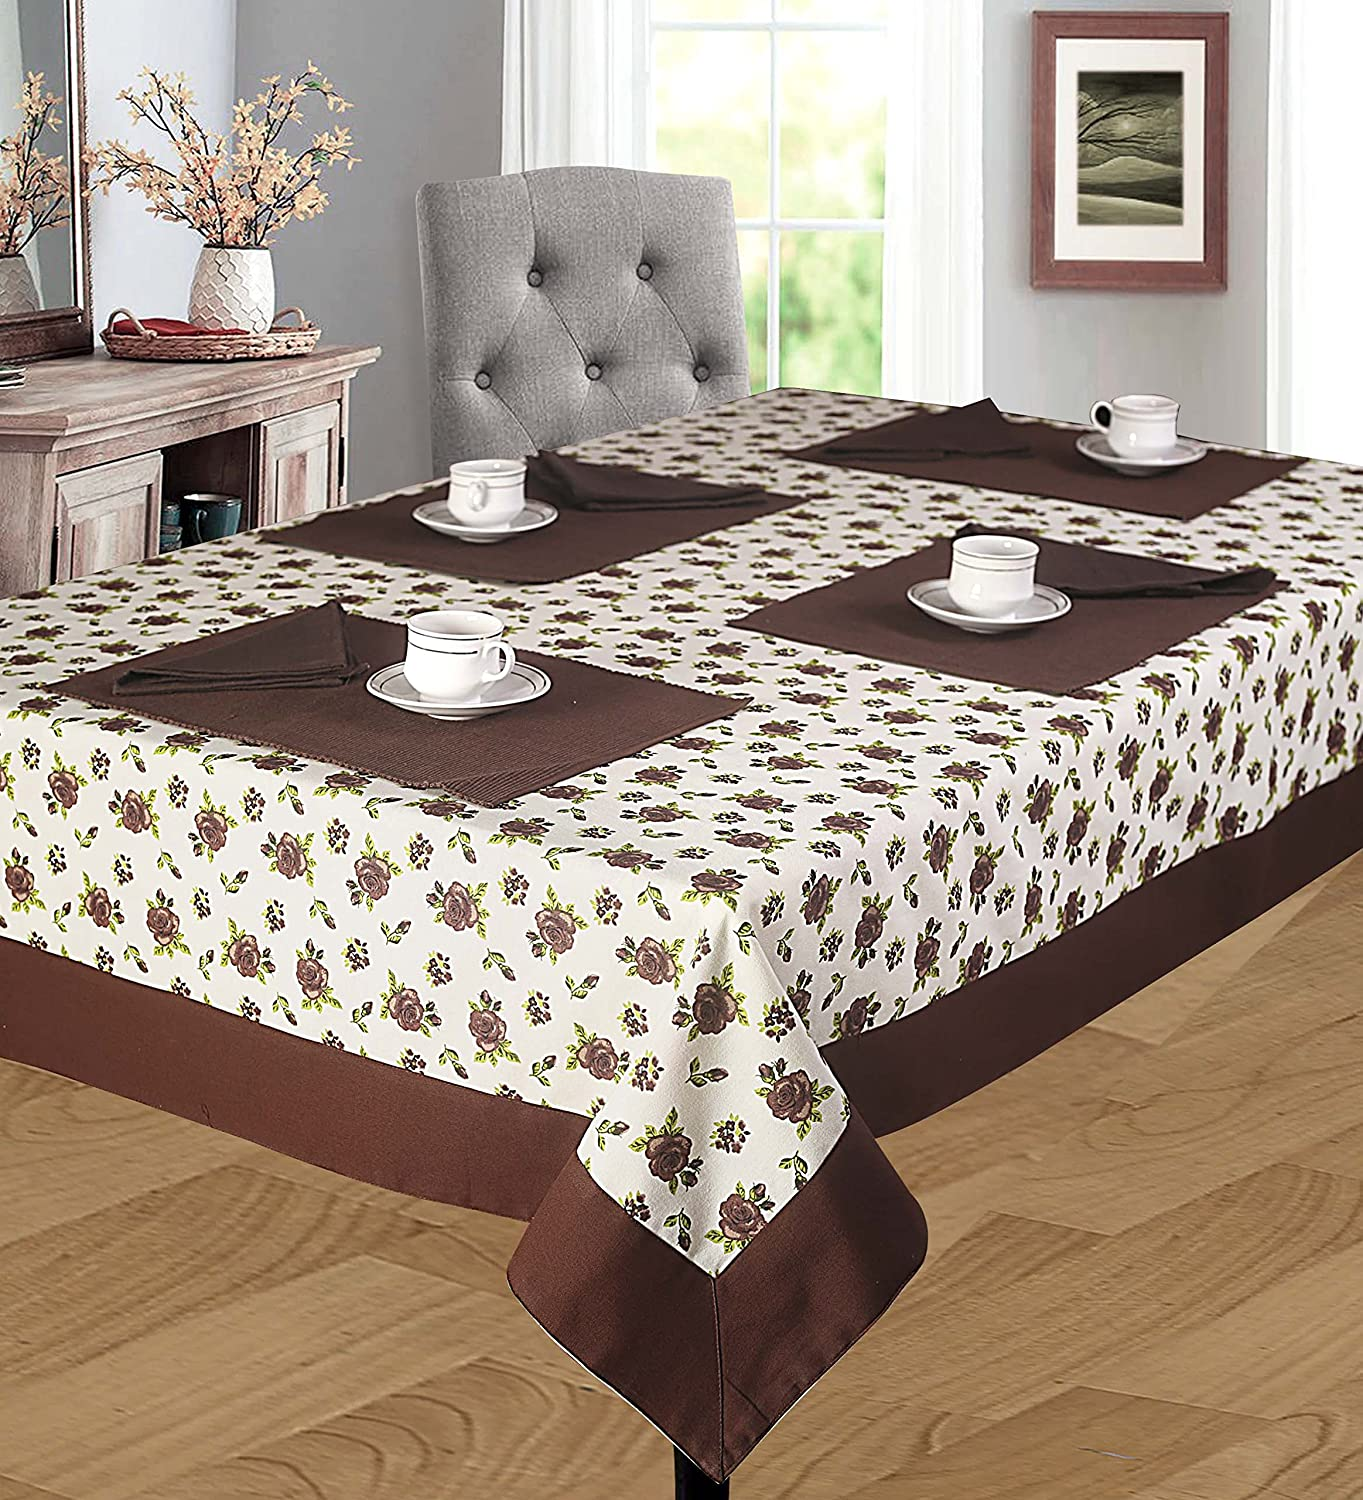 Cloth Fusion Cotton Center Table Cover 4 Seater - (40x60 Inch, Brown)